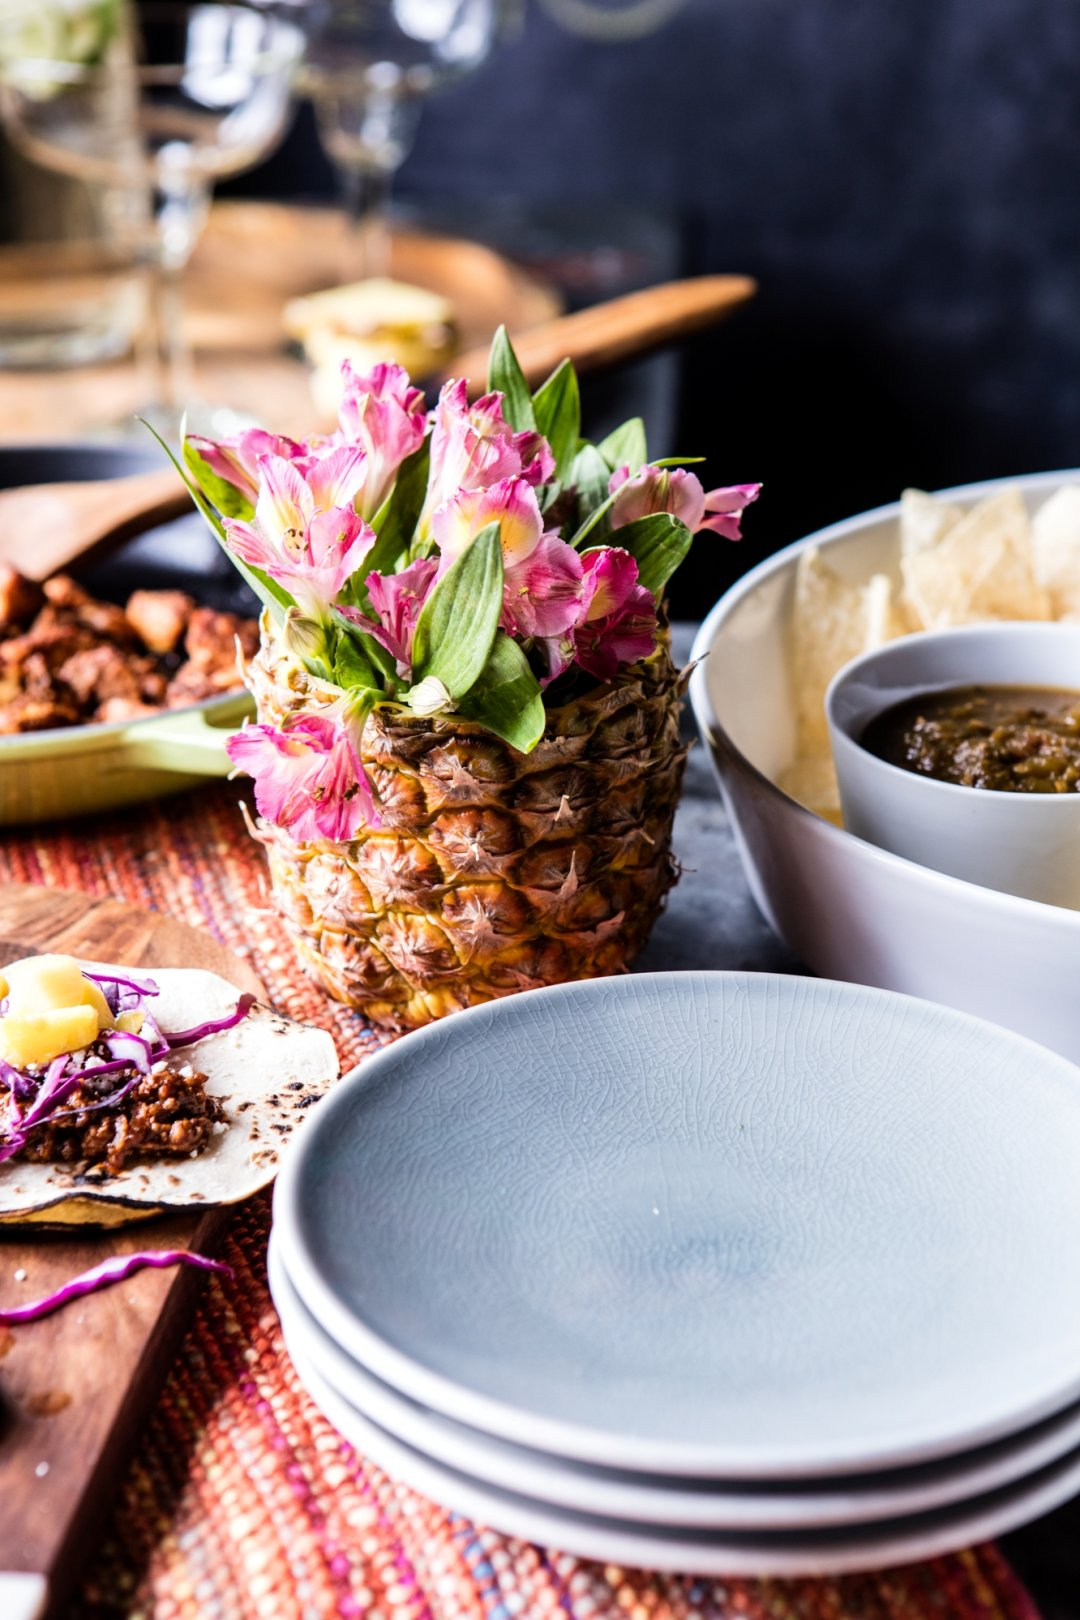 Stack of grey plates with pineapple and flowers in background and chips and dip to the right